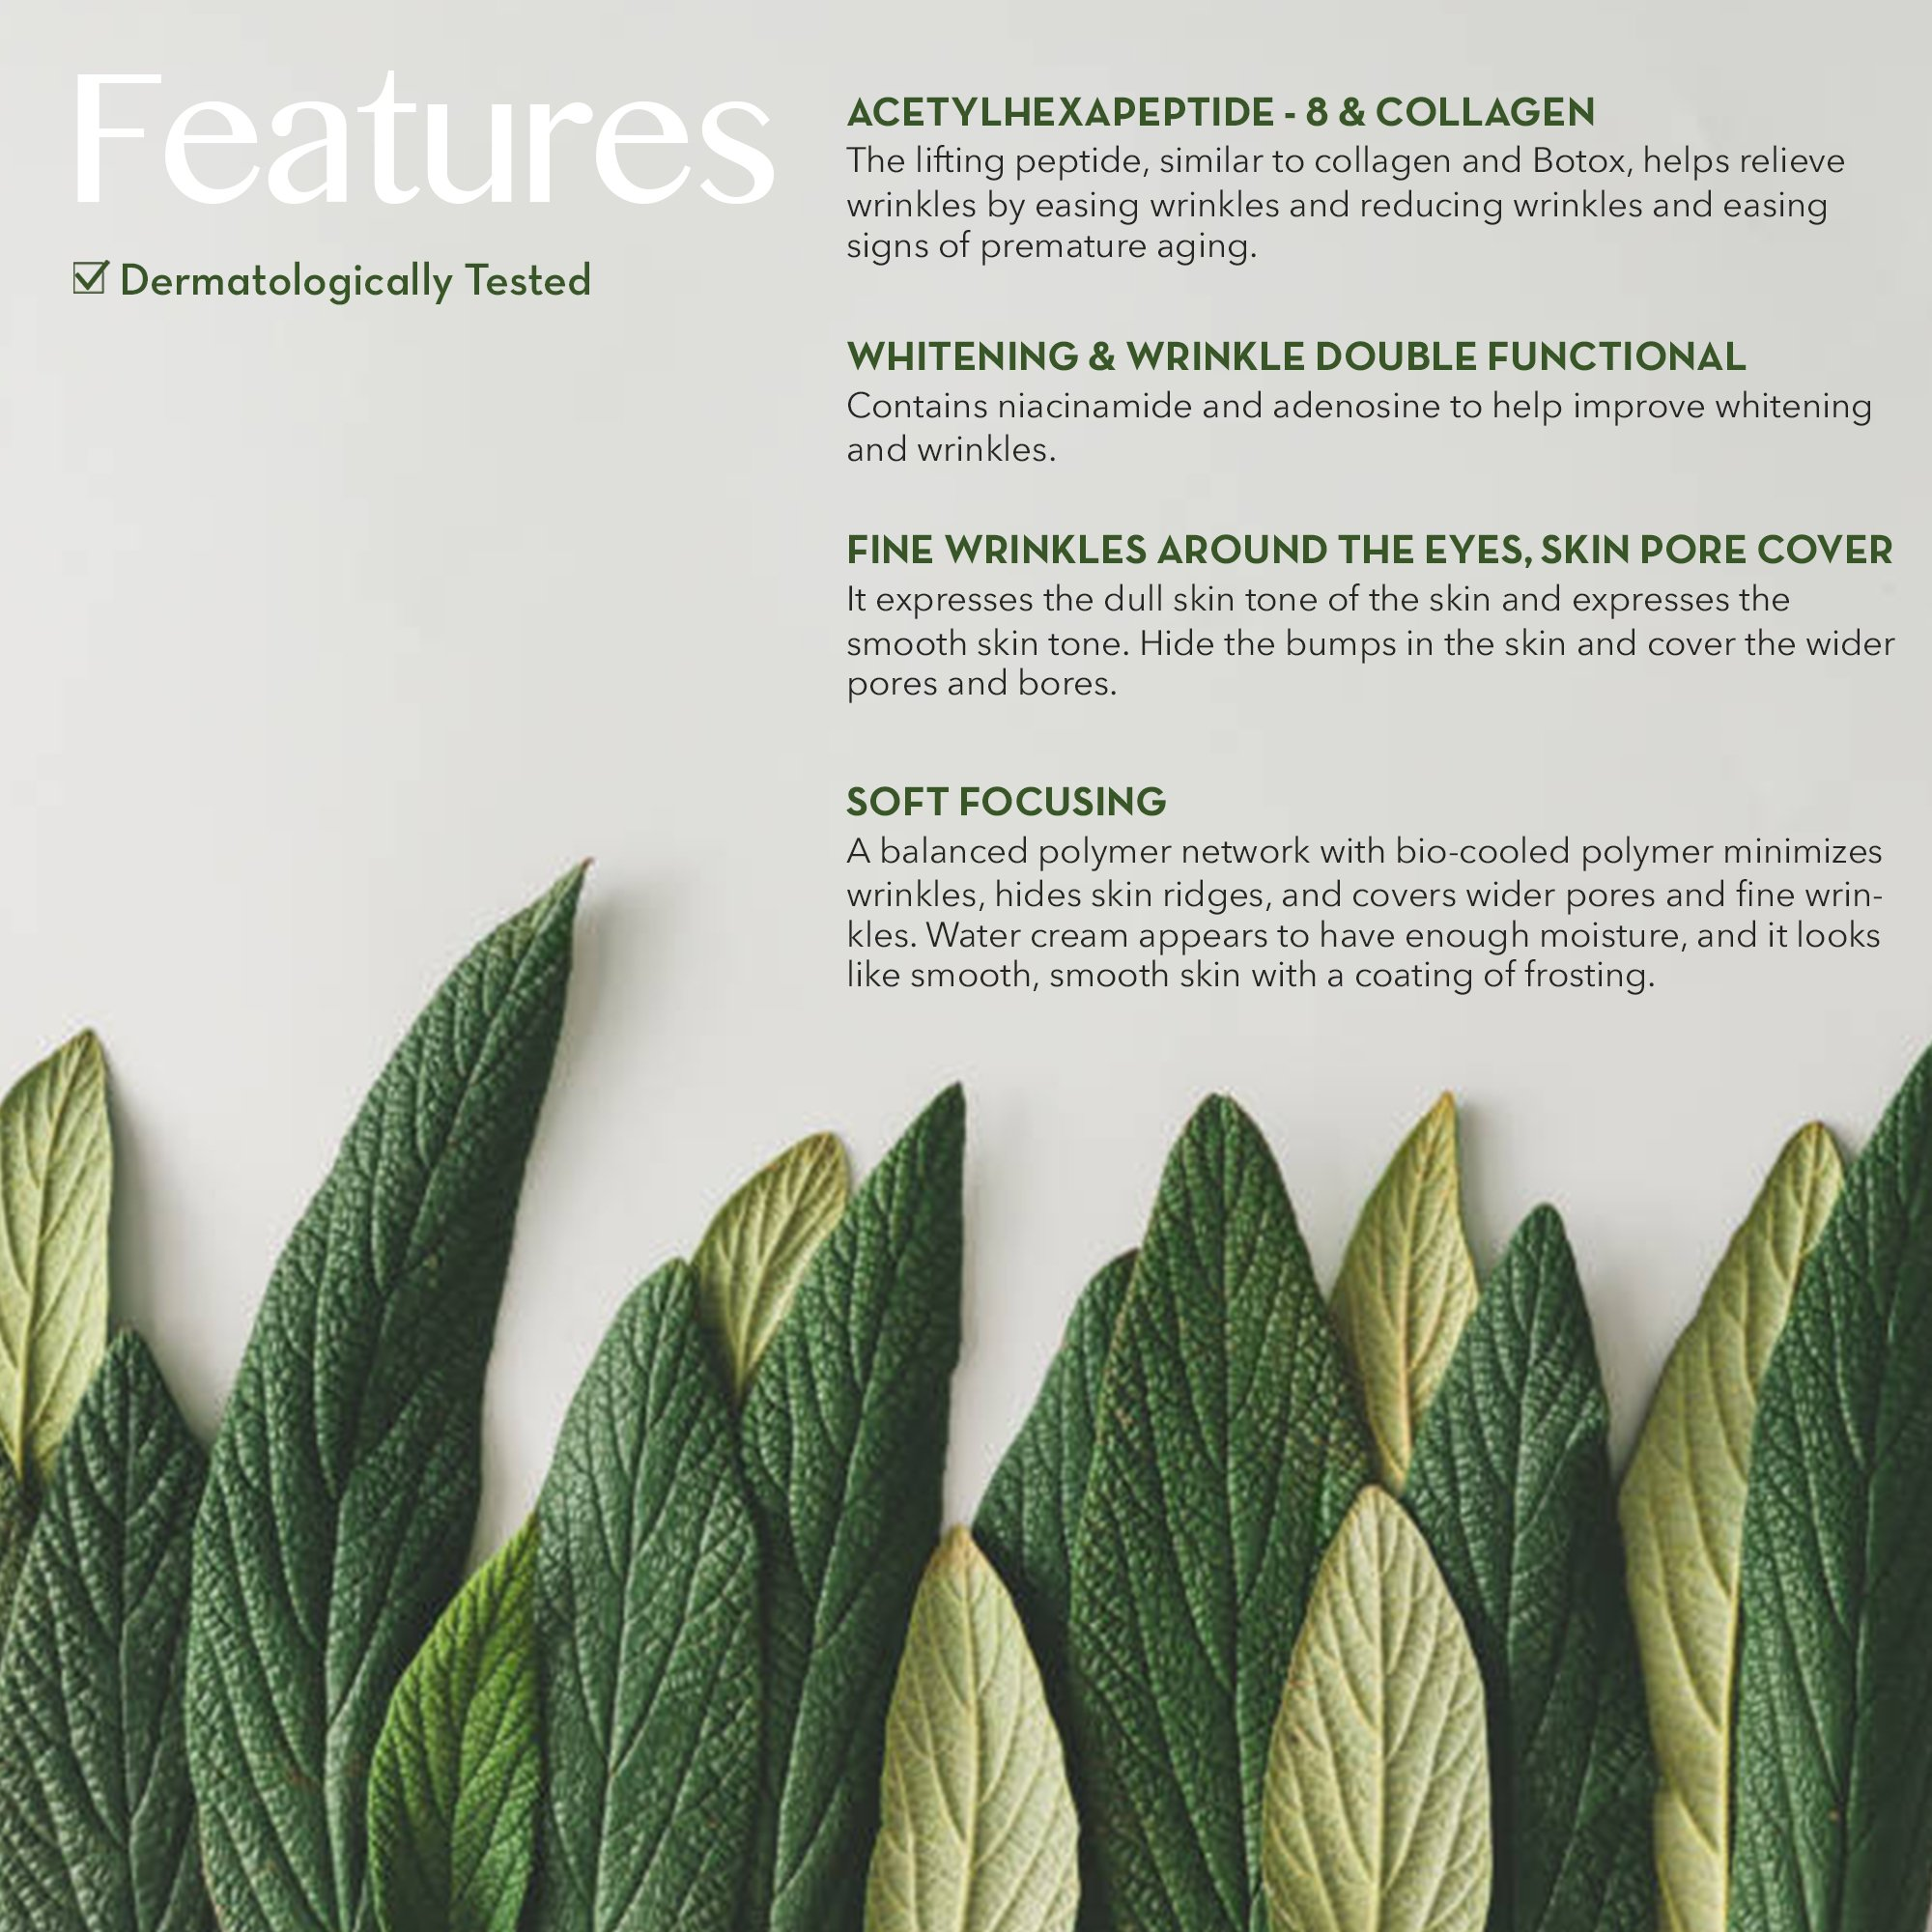 Forest Heal Eye Gel With Collagen Peptides and Niacinamide - Natural Anti Aging, Anti Wrinkle Moisturizer For Under and Around Eyes - 1.69 fl.oz. by Forest Heal (Image #4)